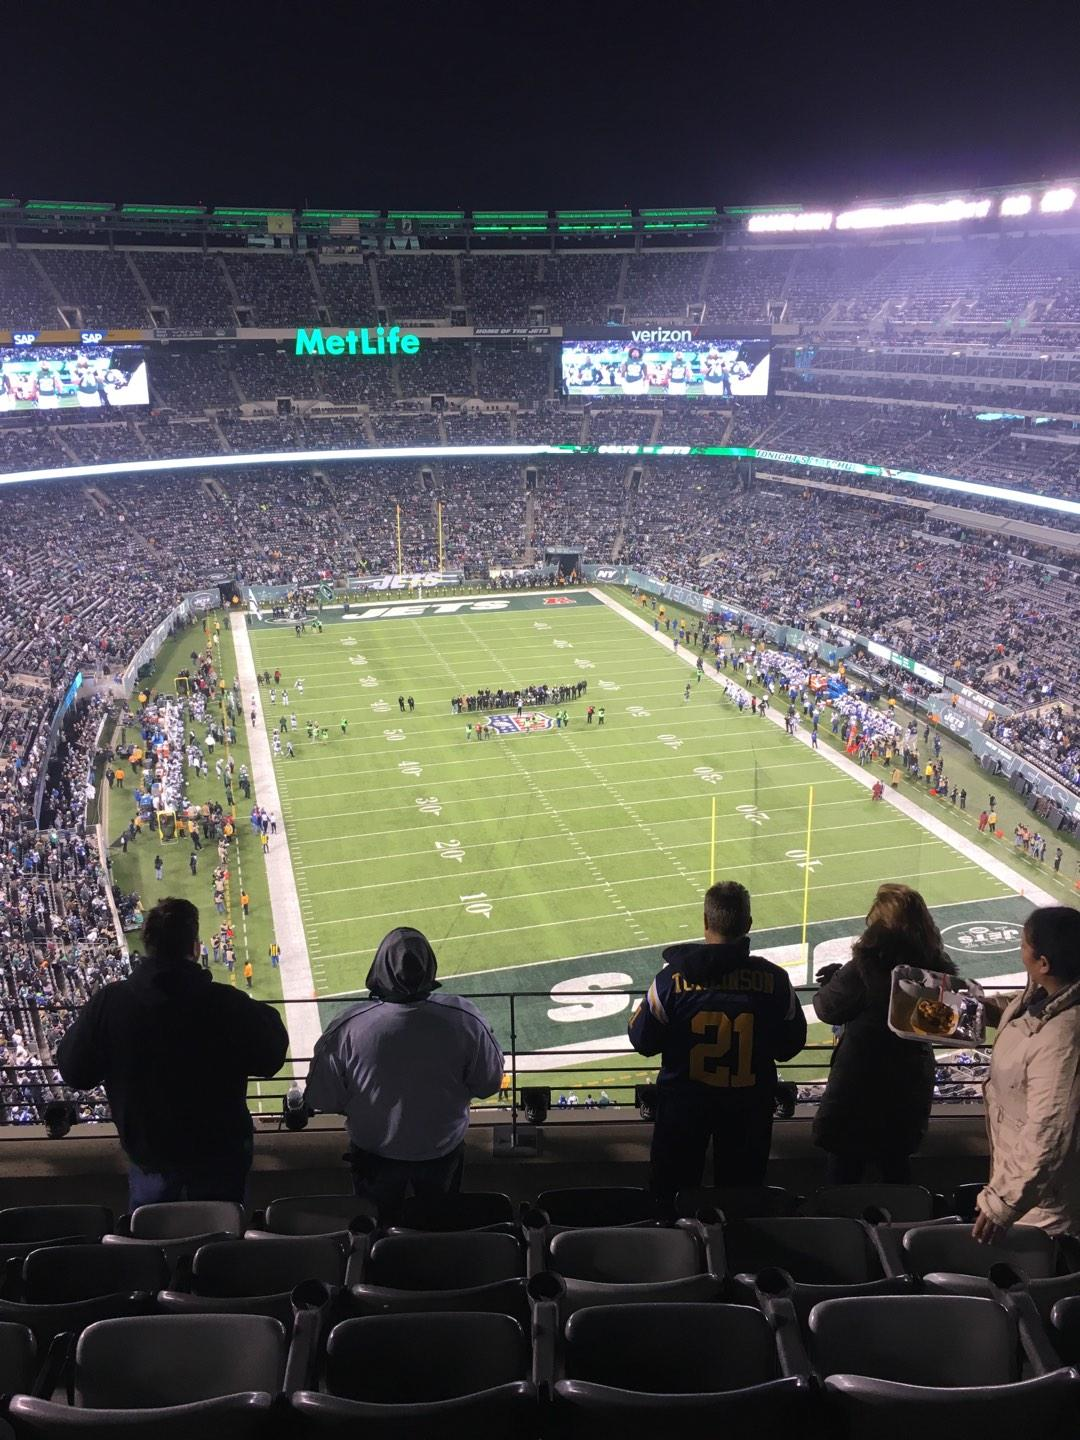 MetLife Stadium Section 303 Row 10 Seat 15